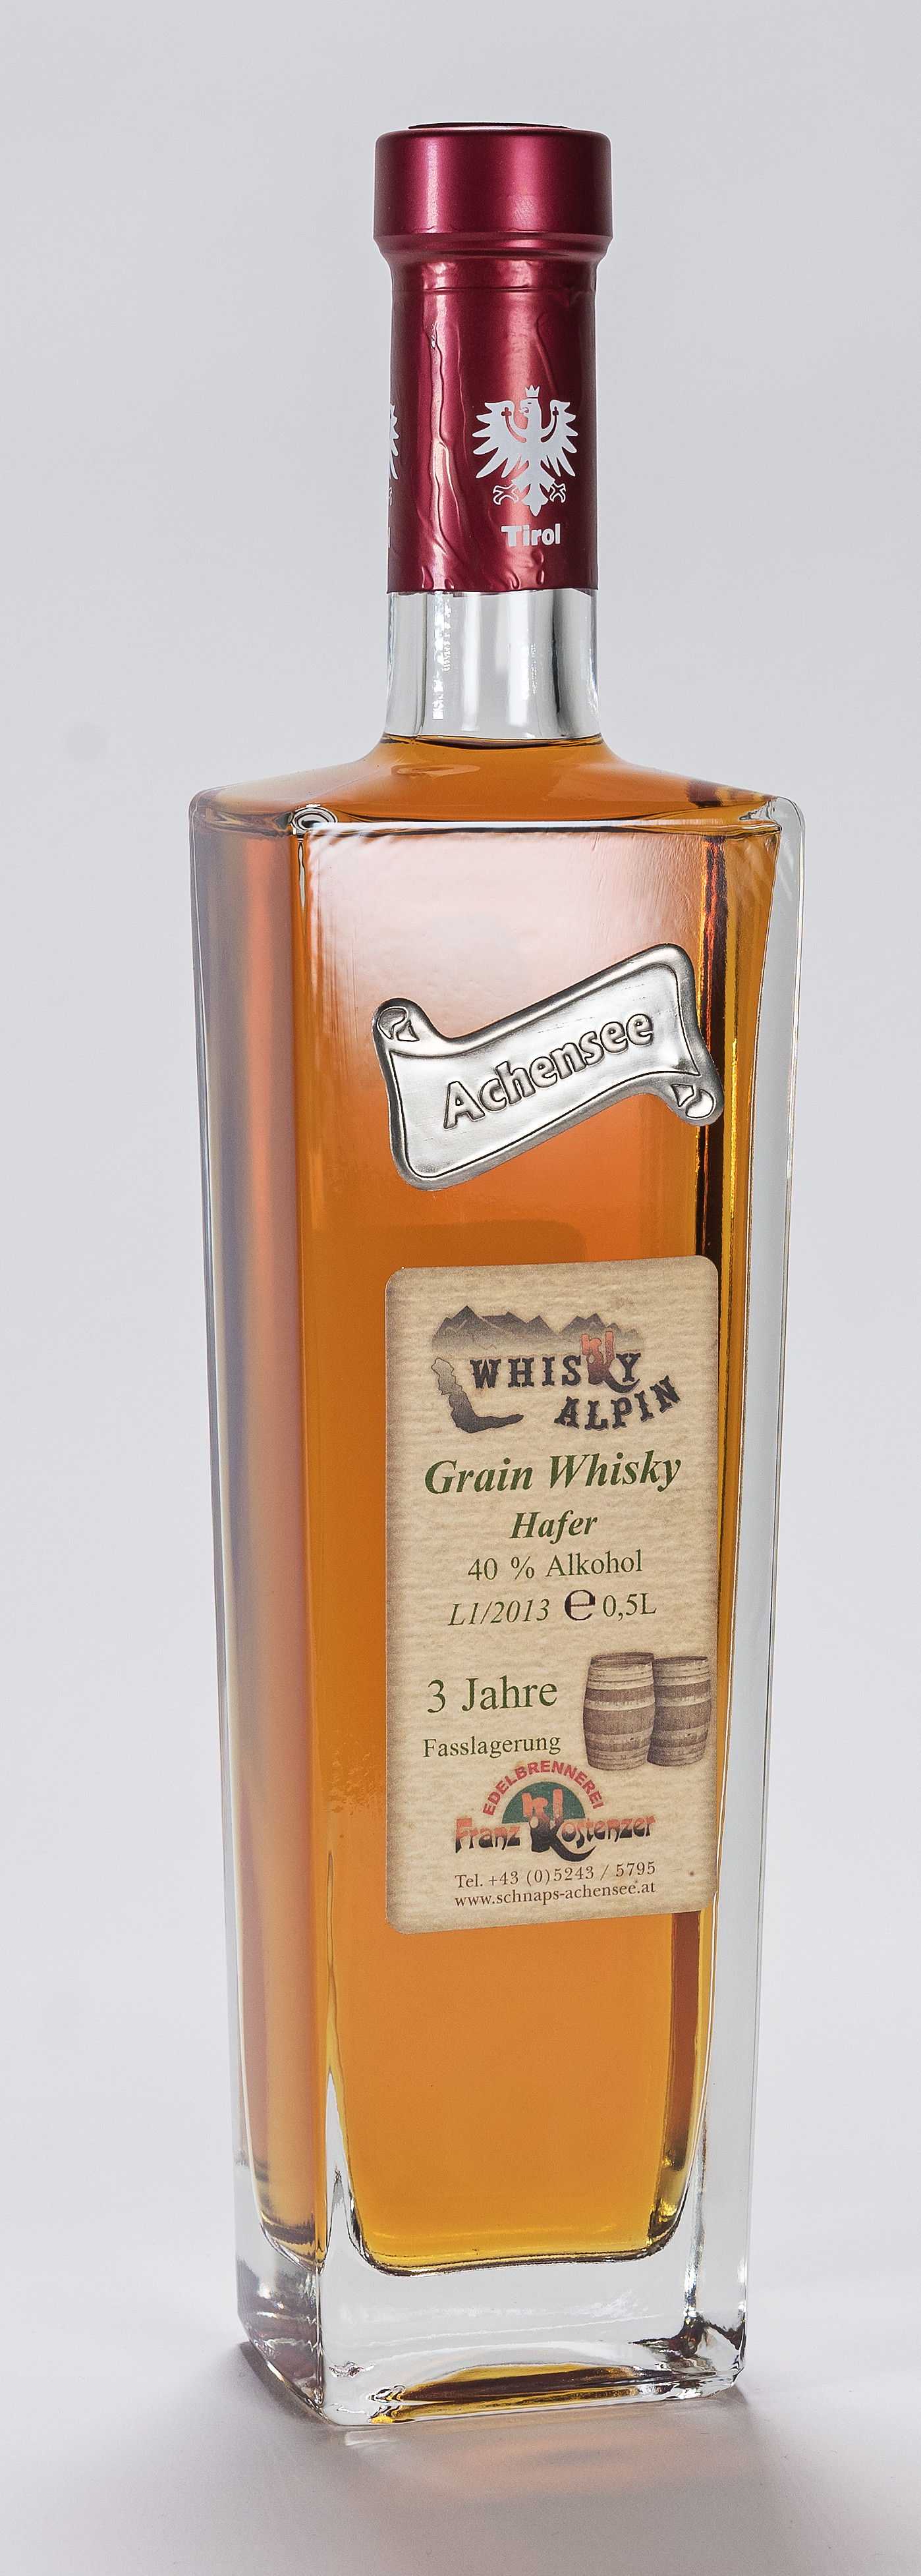 Grain Whisky Hafer